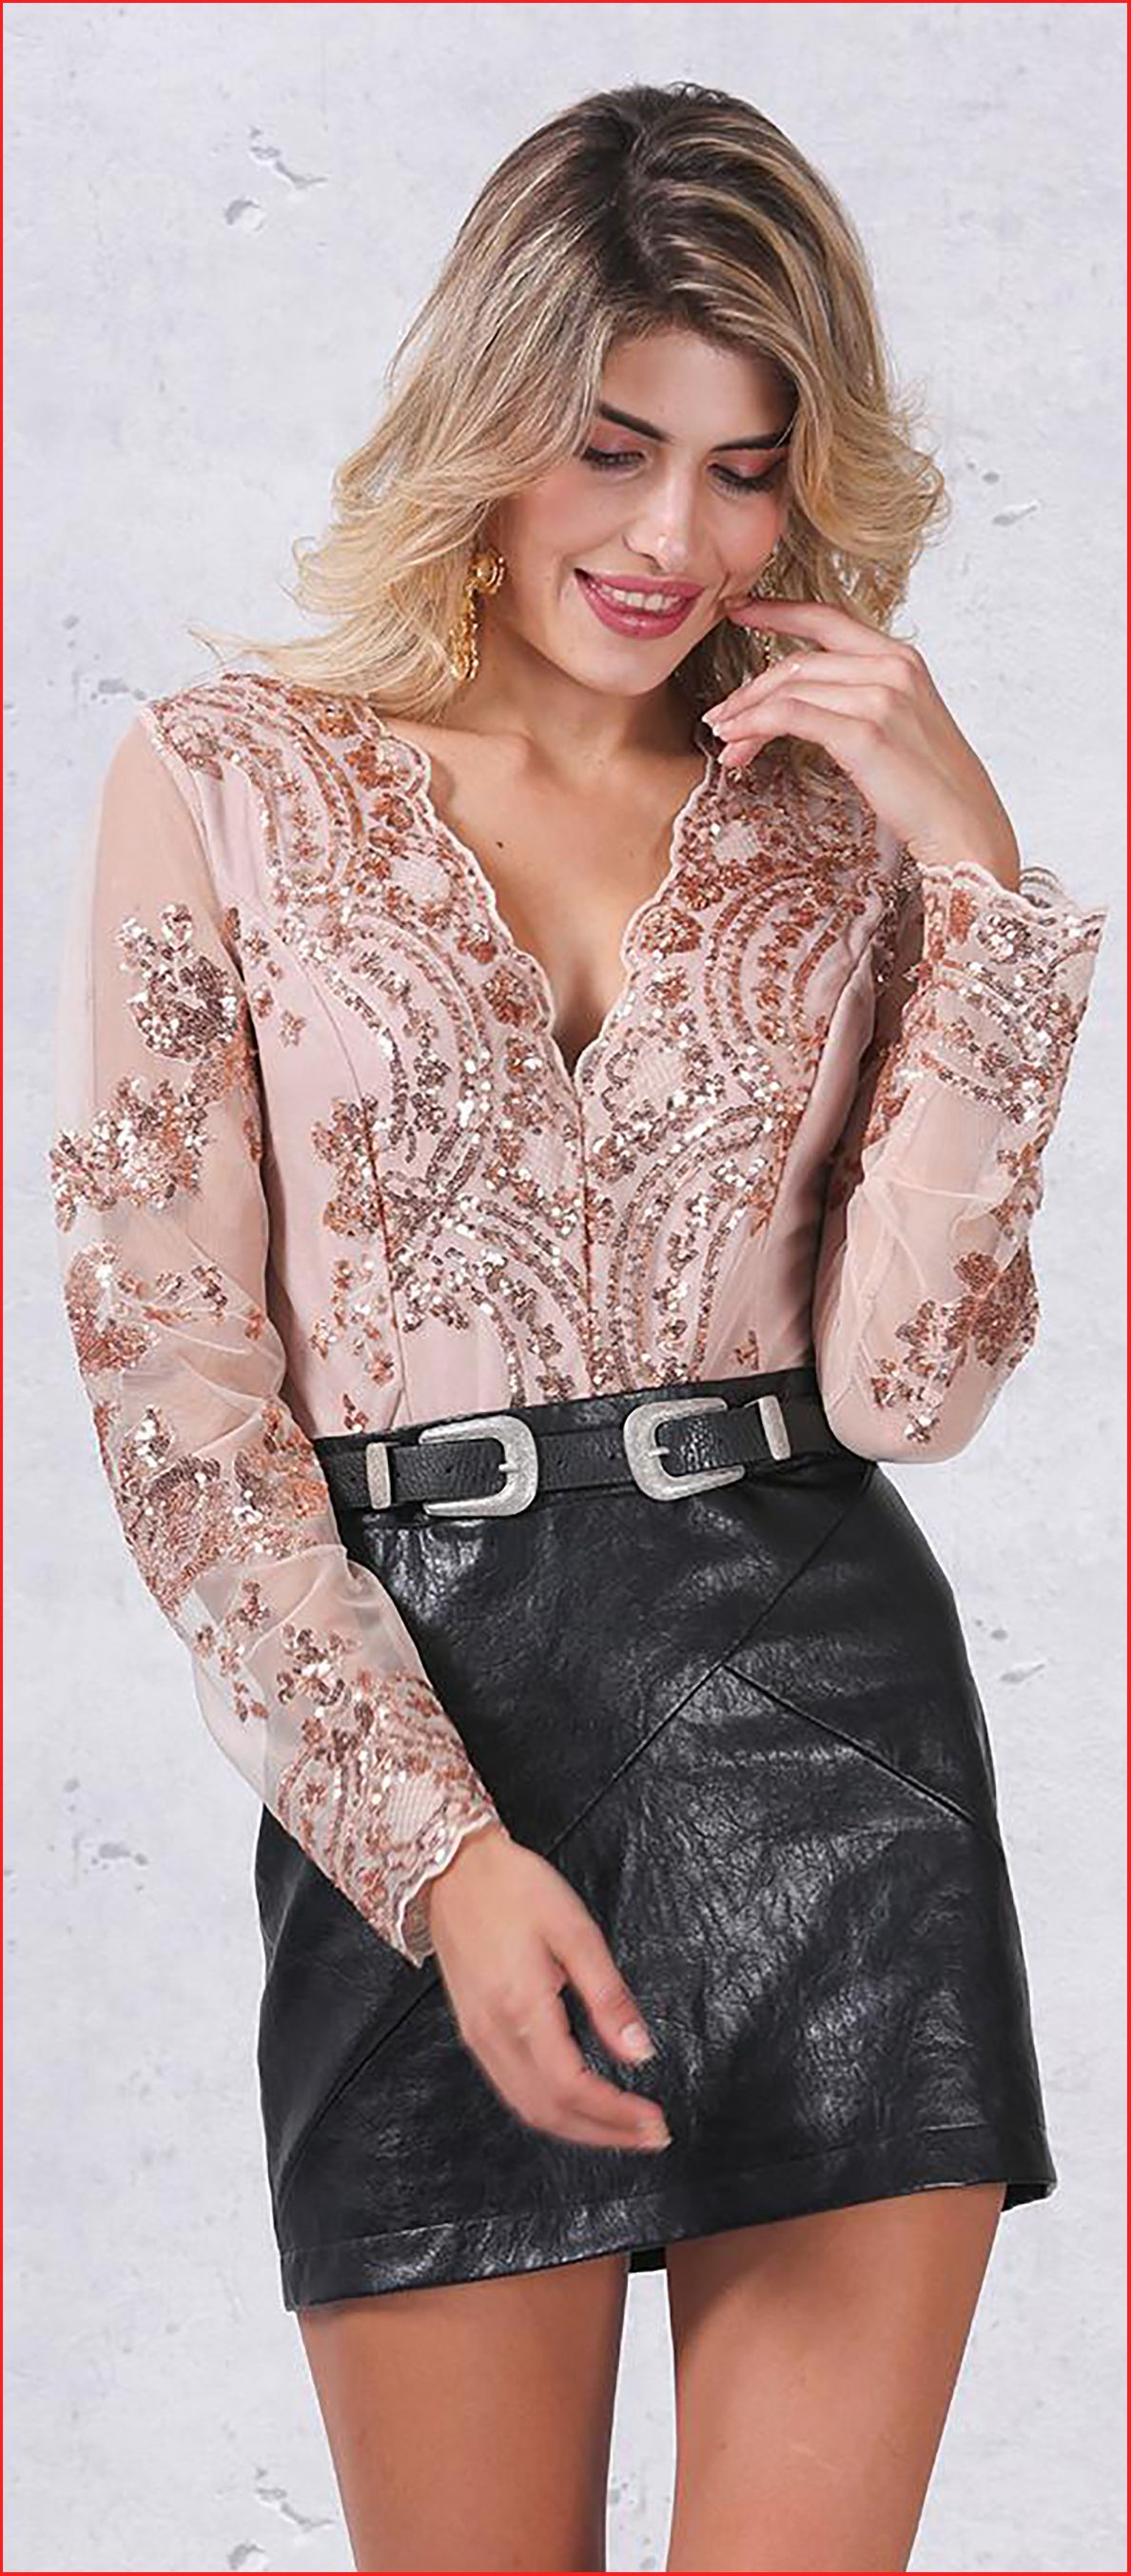 Zari sequin bodysuit bodysuit sequins and polyester spandex